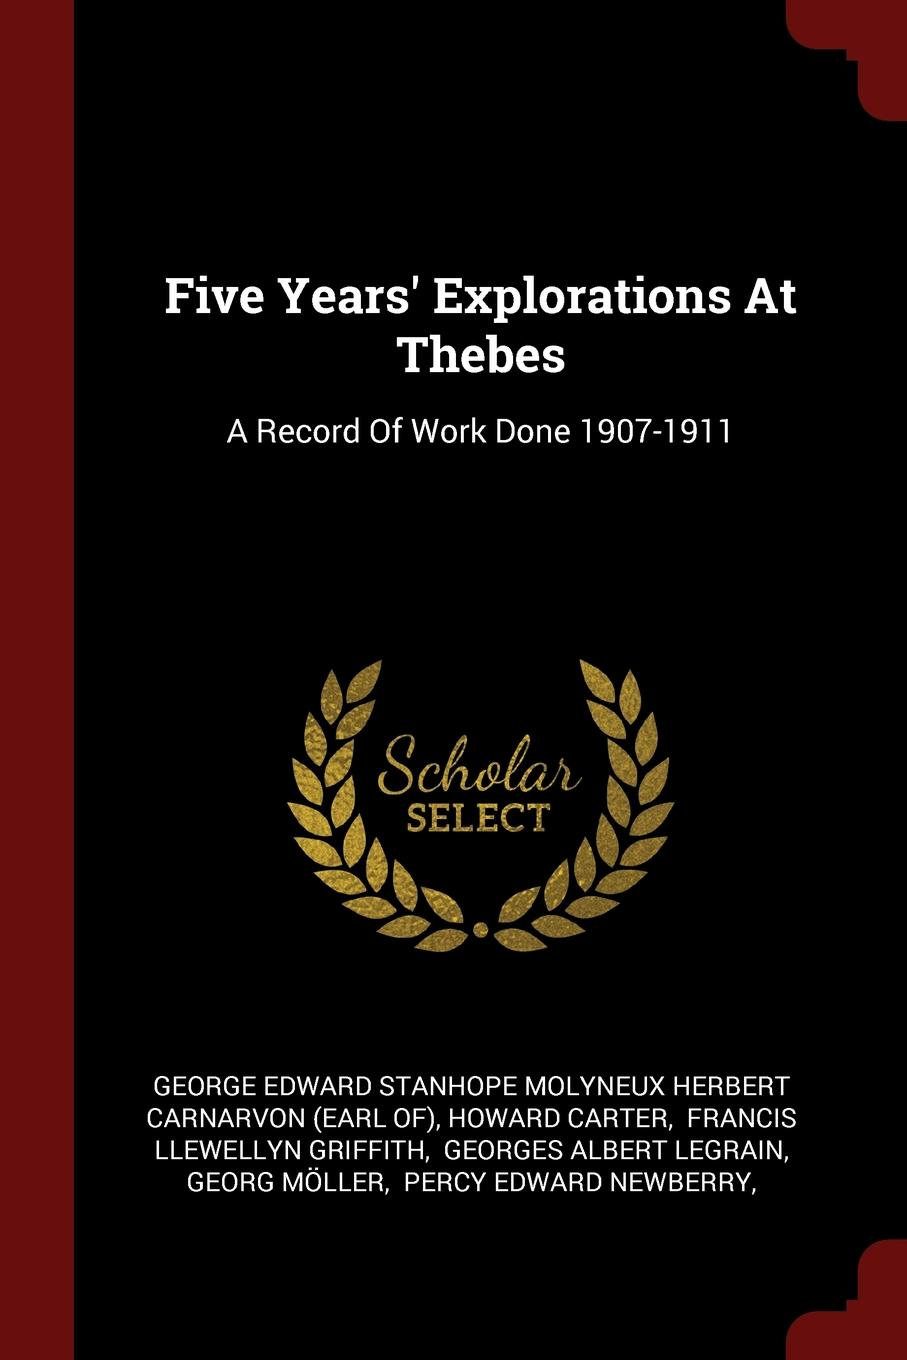 Five Years. Explorations At Thebes. A Record Of Work Done 1907-1911